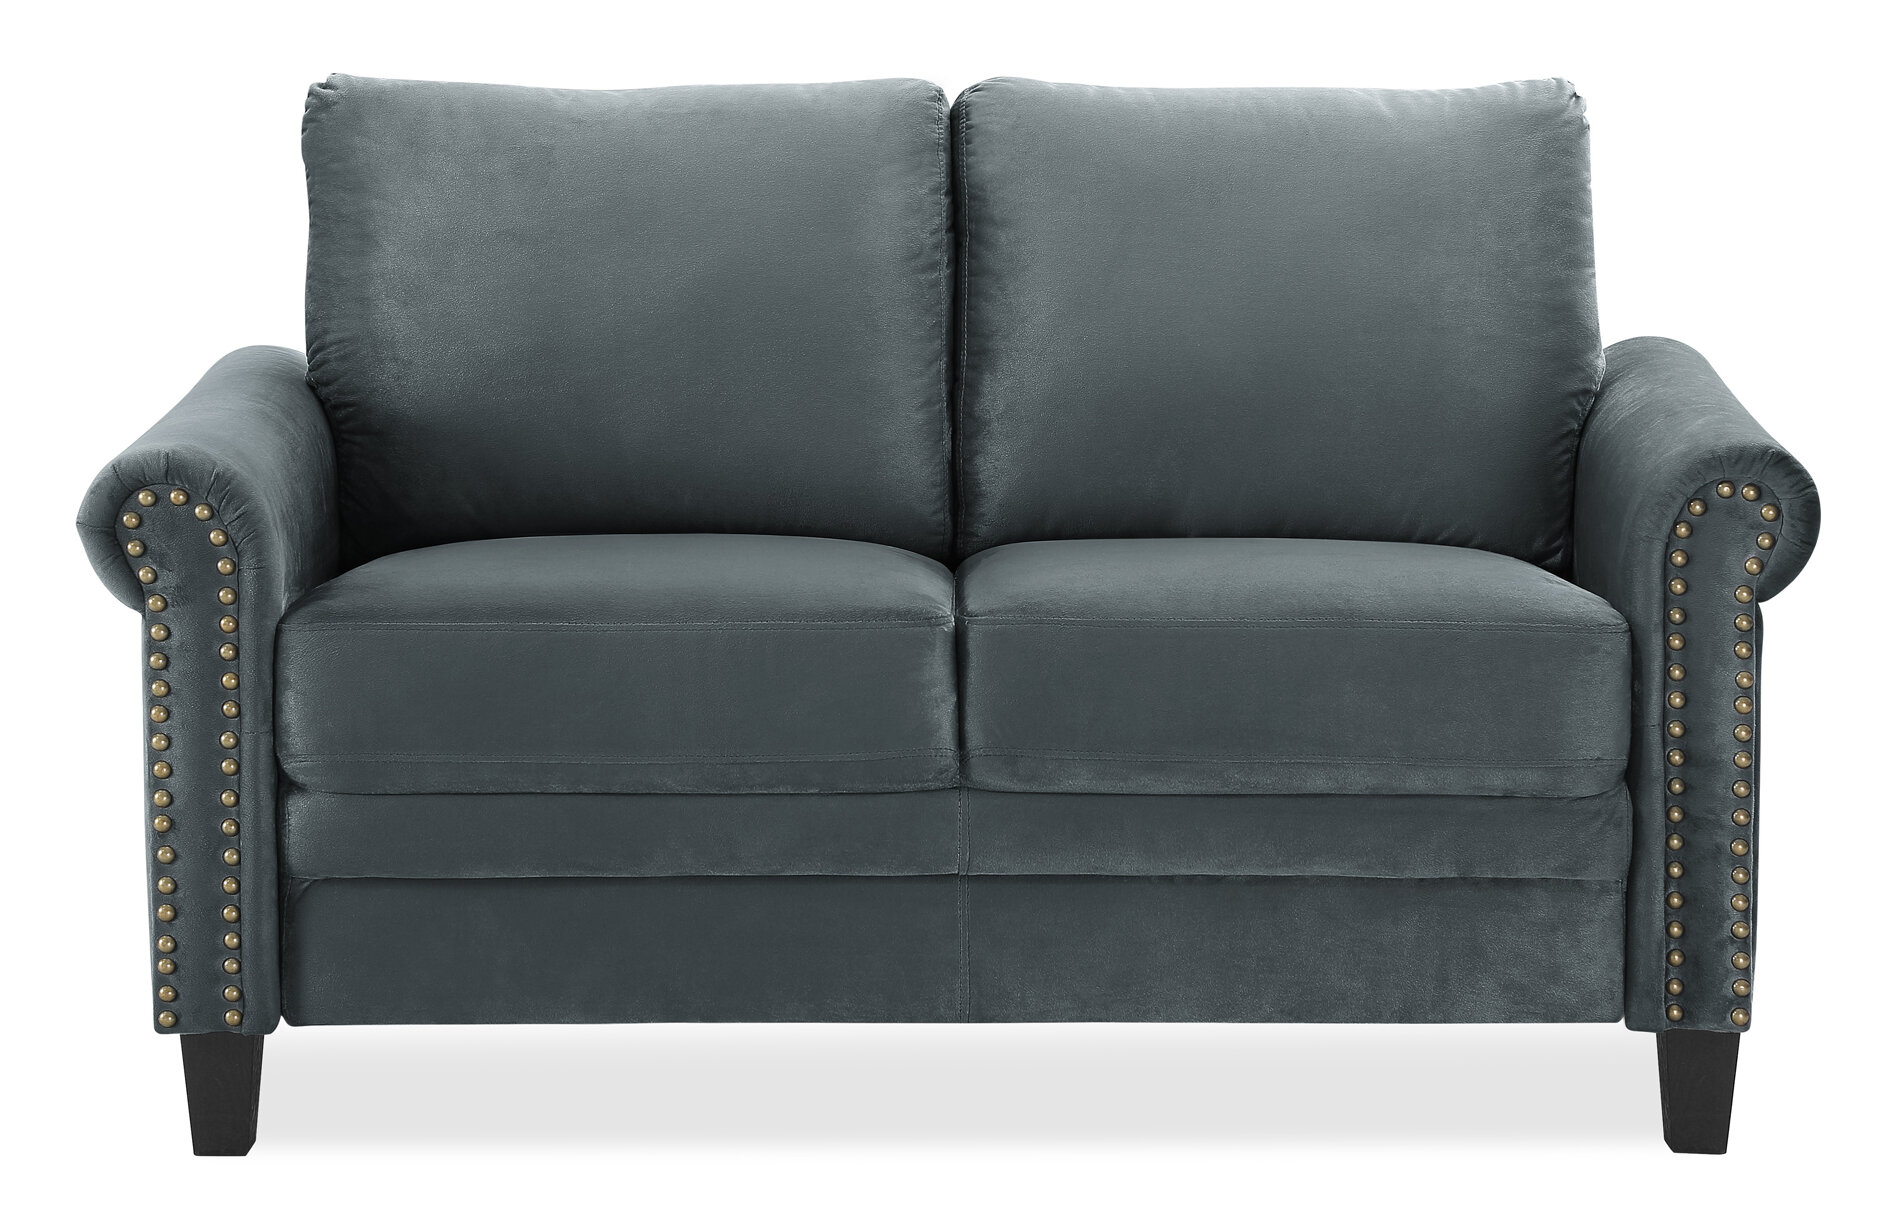 loveseats lots for costco sectional affordable sofa using room amusing cheap under big ideas pit sofas sets bobs sect living discount pretty furniture leather loveseat